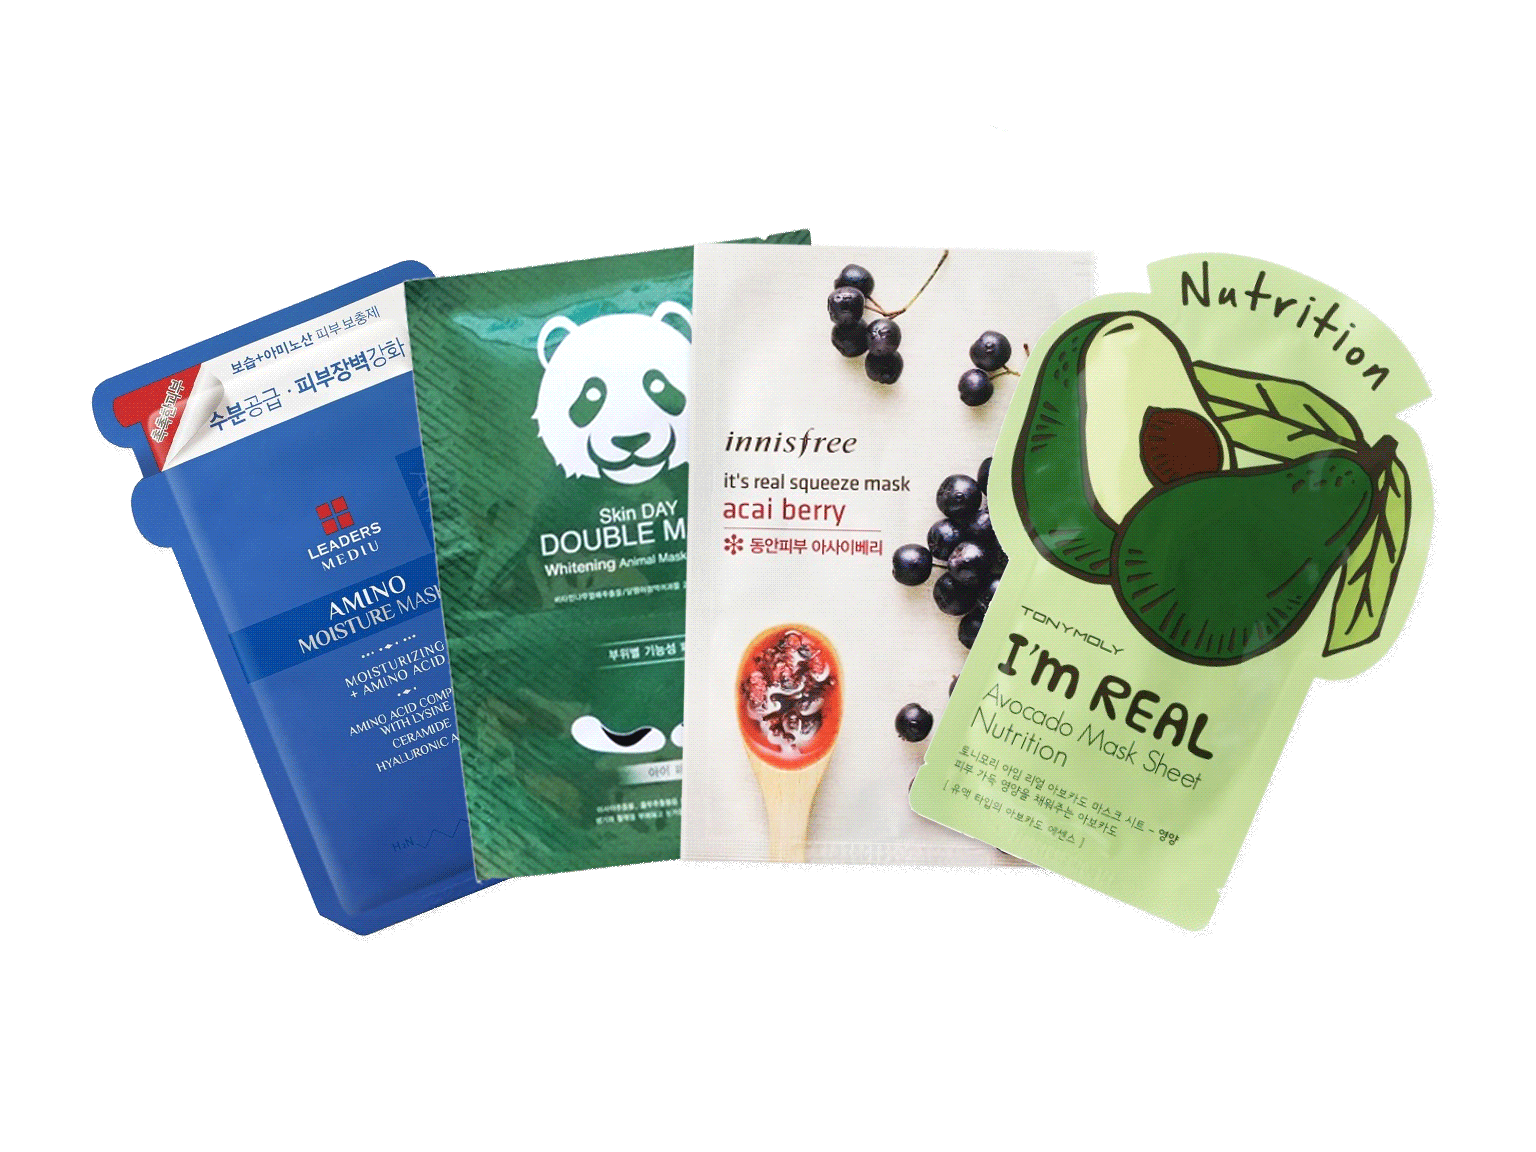 """Tired of your usual selection of sheet masks and looking for something new? Treat yourself to a box of new surprises every month! Be part of the sheet masking"